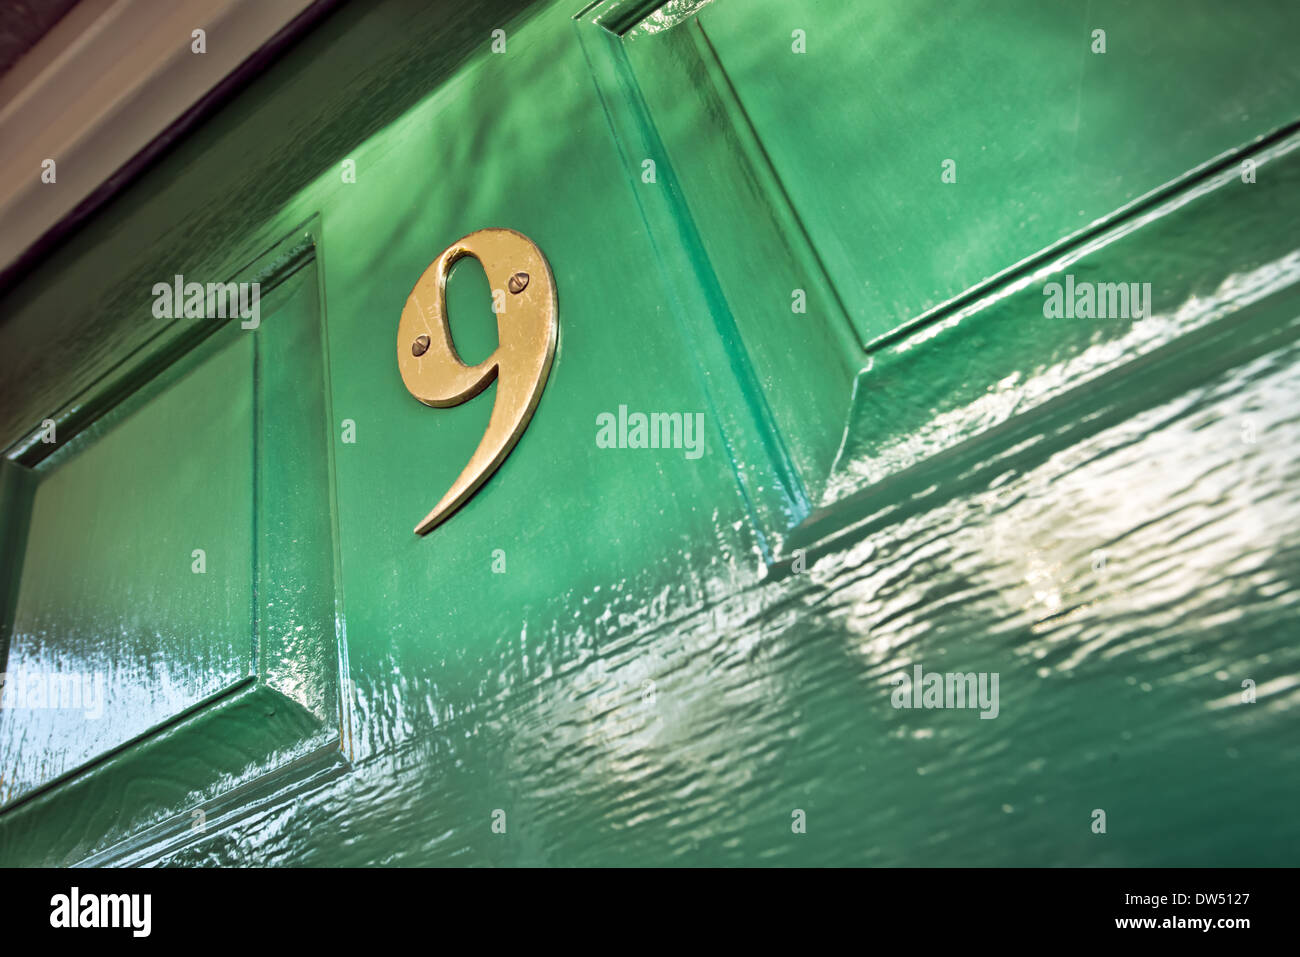 A brass number nine screwed to a green door - Stock Image